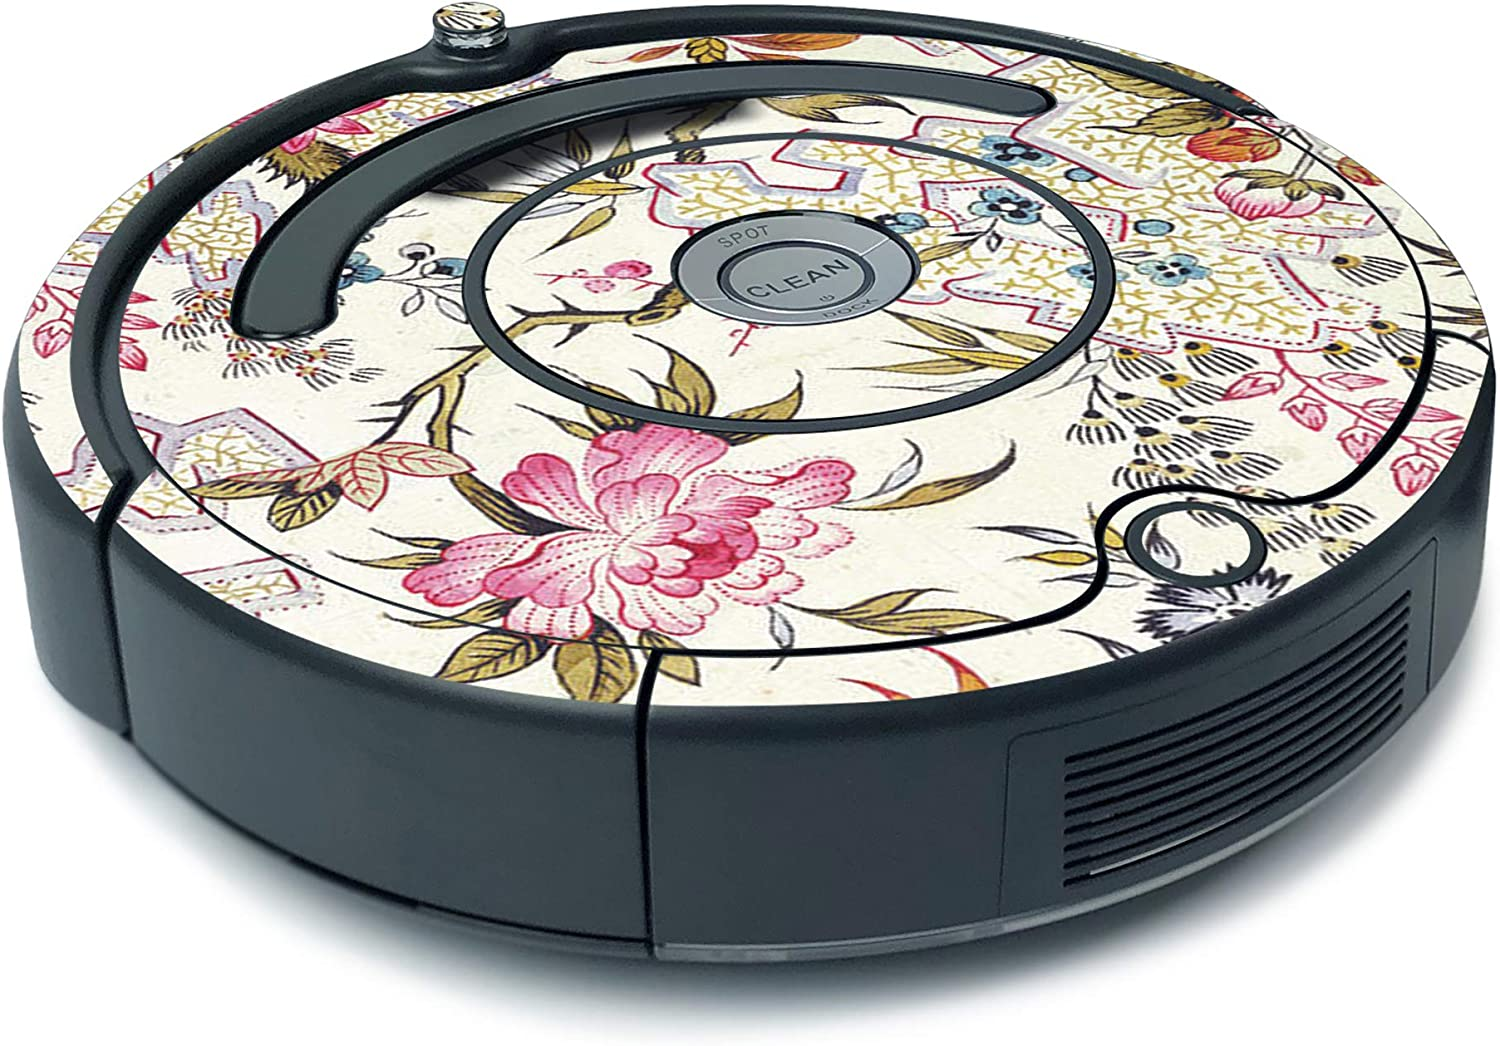 MightySkins Skin for iRobot Roomba 675 Minimal Coverage - Floral Design | Protective, Durable, and Unique Vinyl Decal wrap Cover | Easy to Apply, Remove, and Change Styles | Made in The USA